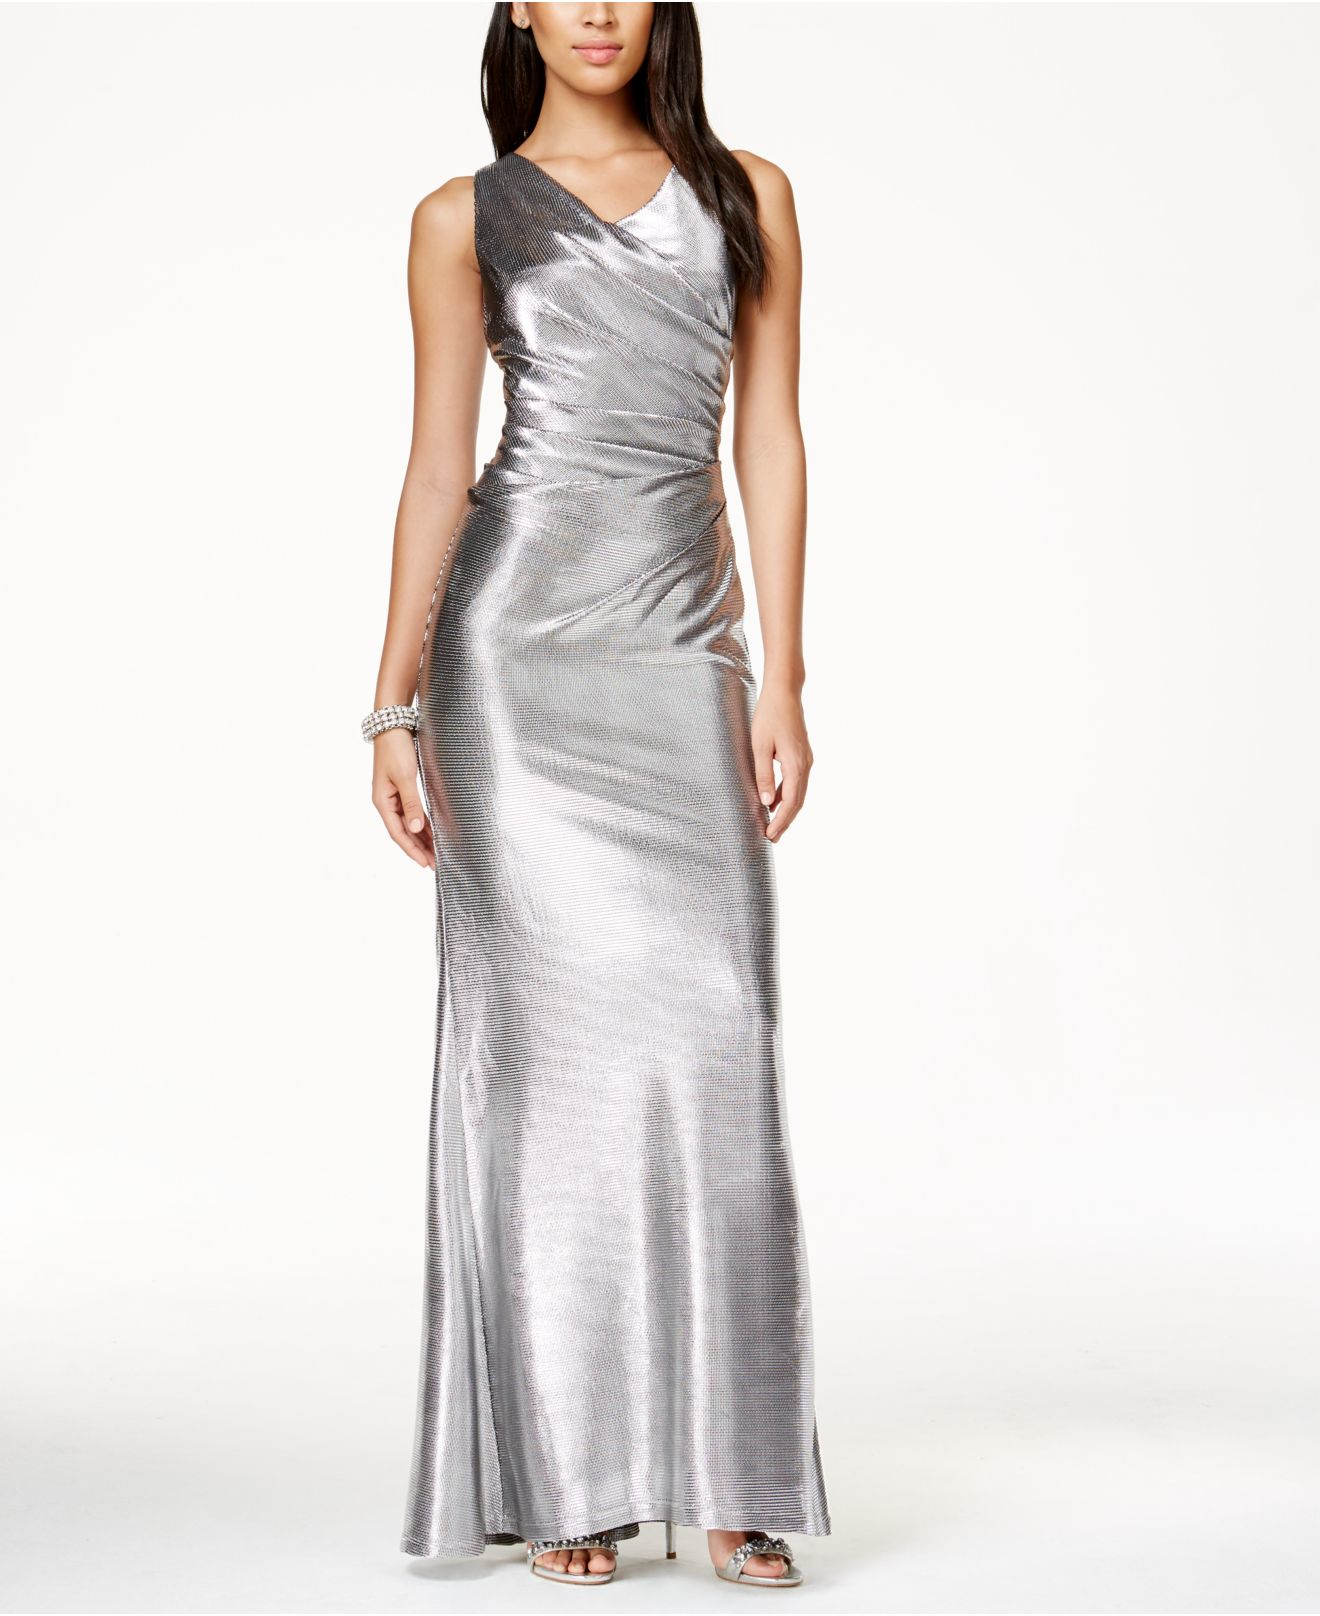 Lyst - Vince Camuto Sleeveless Metallic Gown in Metallic